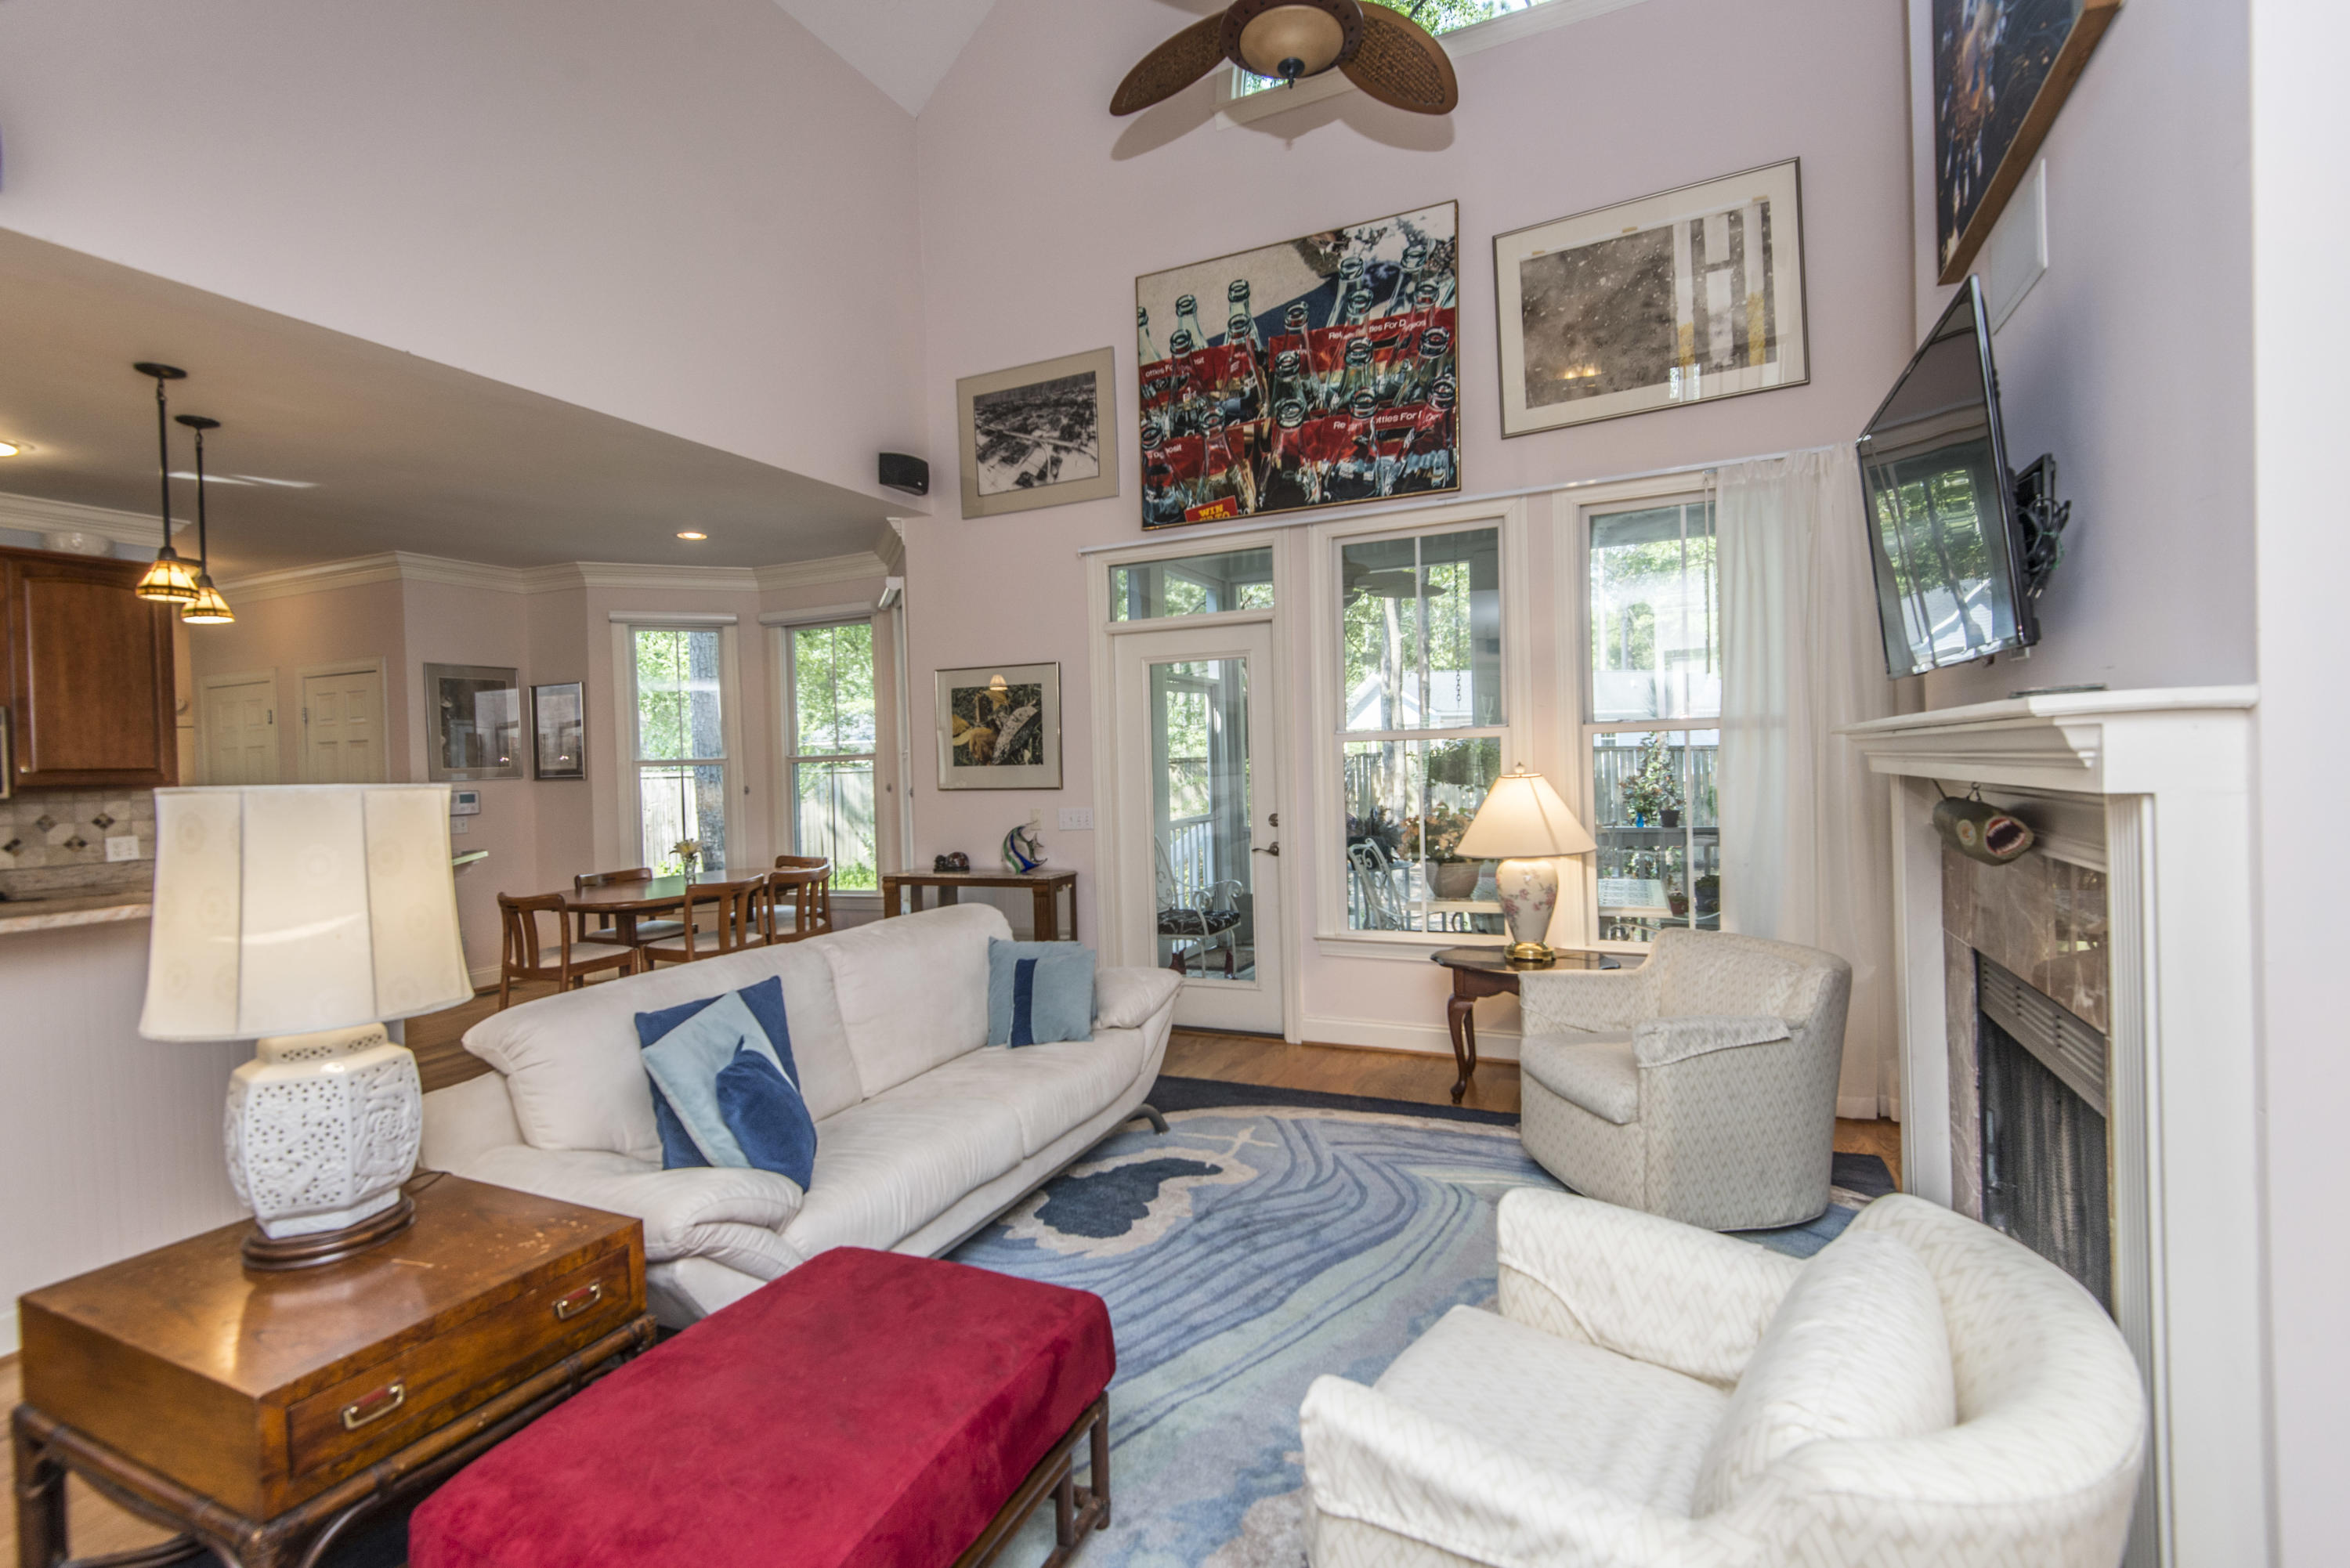 The Villages In St Johns Woods Homes For Sale - 4087 Amy, Johns Island, SC - 16